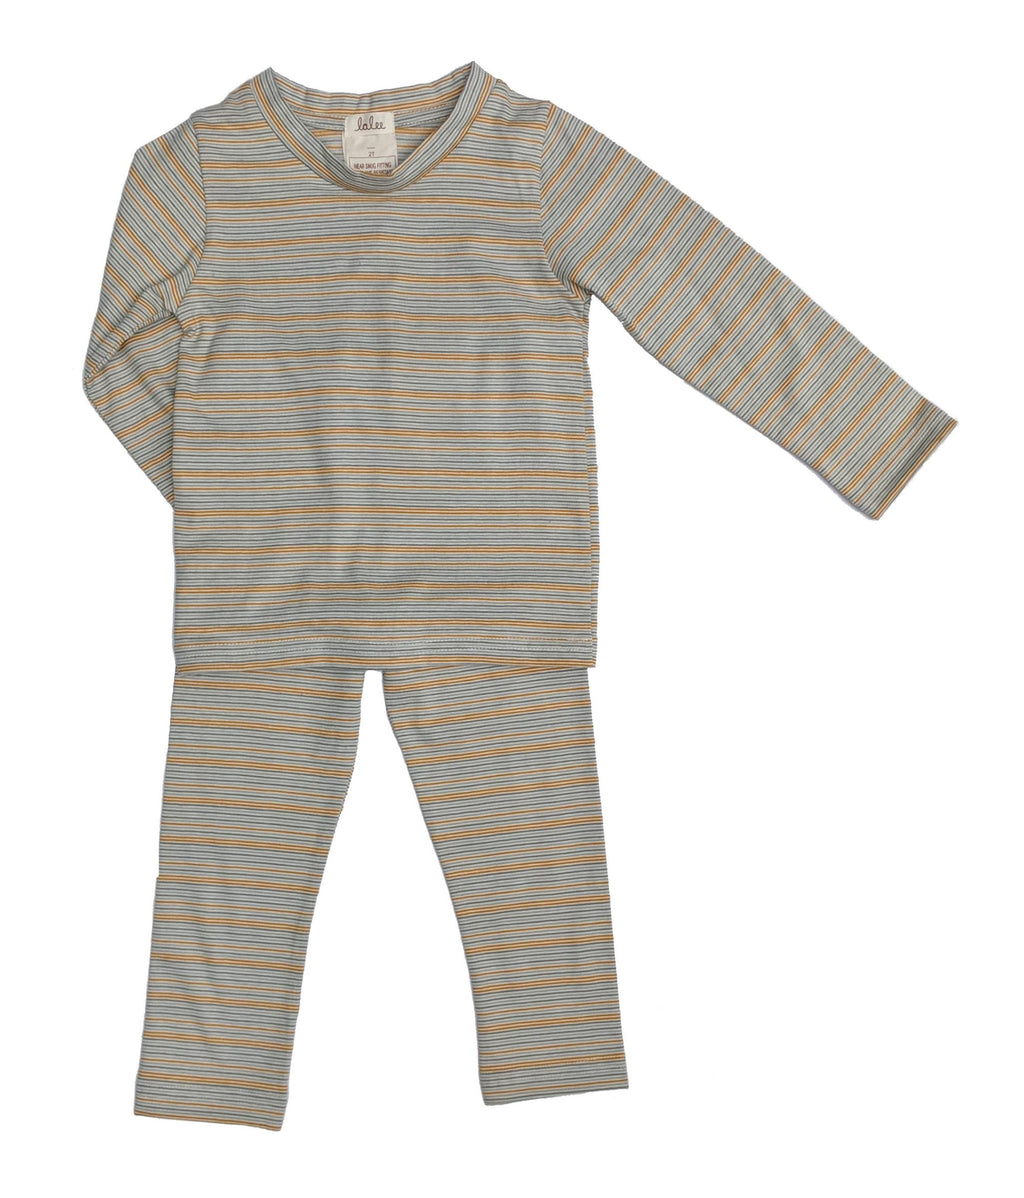 Organic Cotton Pajamas Set - Multistripe